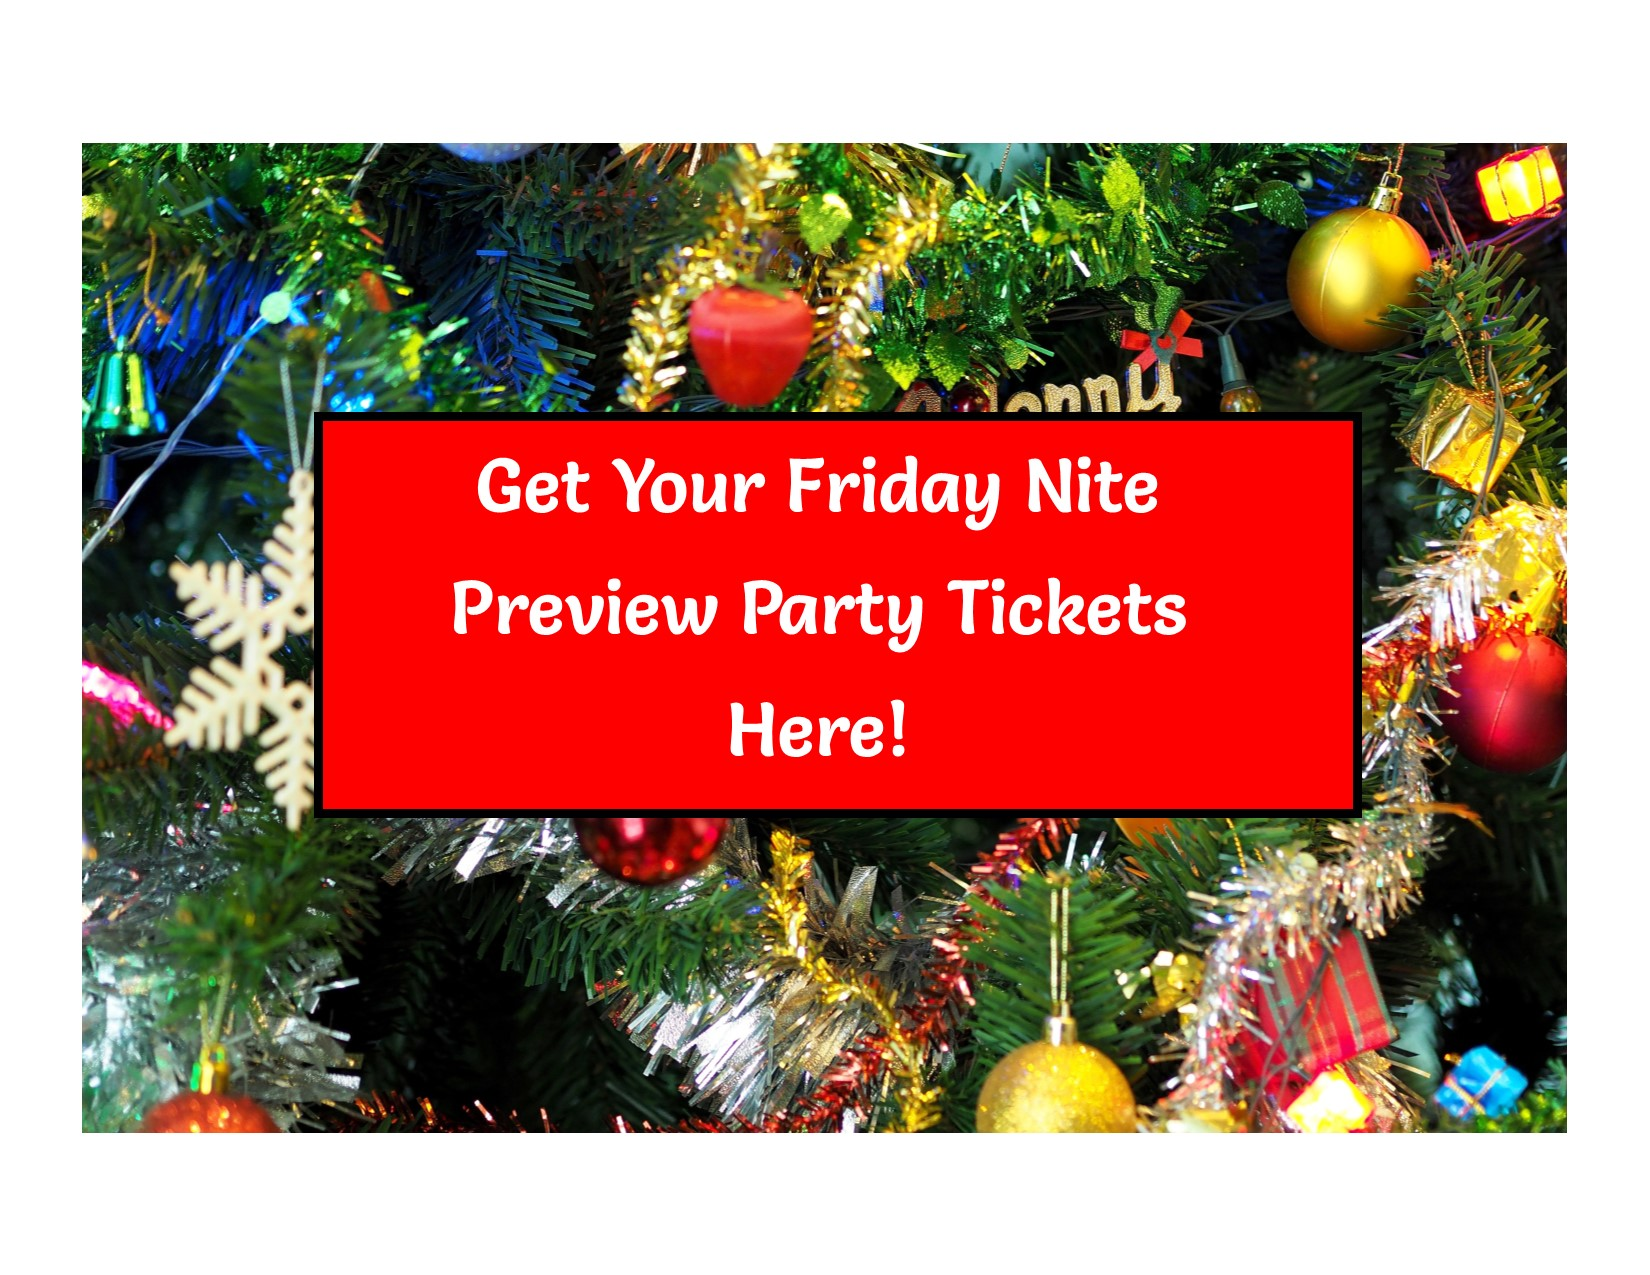 Angels & Mistletoe Preview Party Ticket